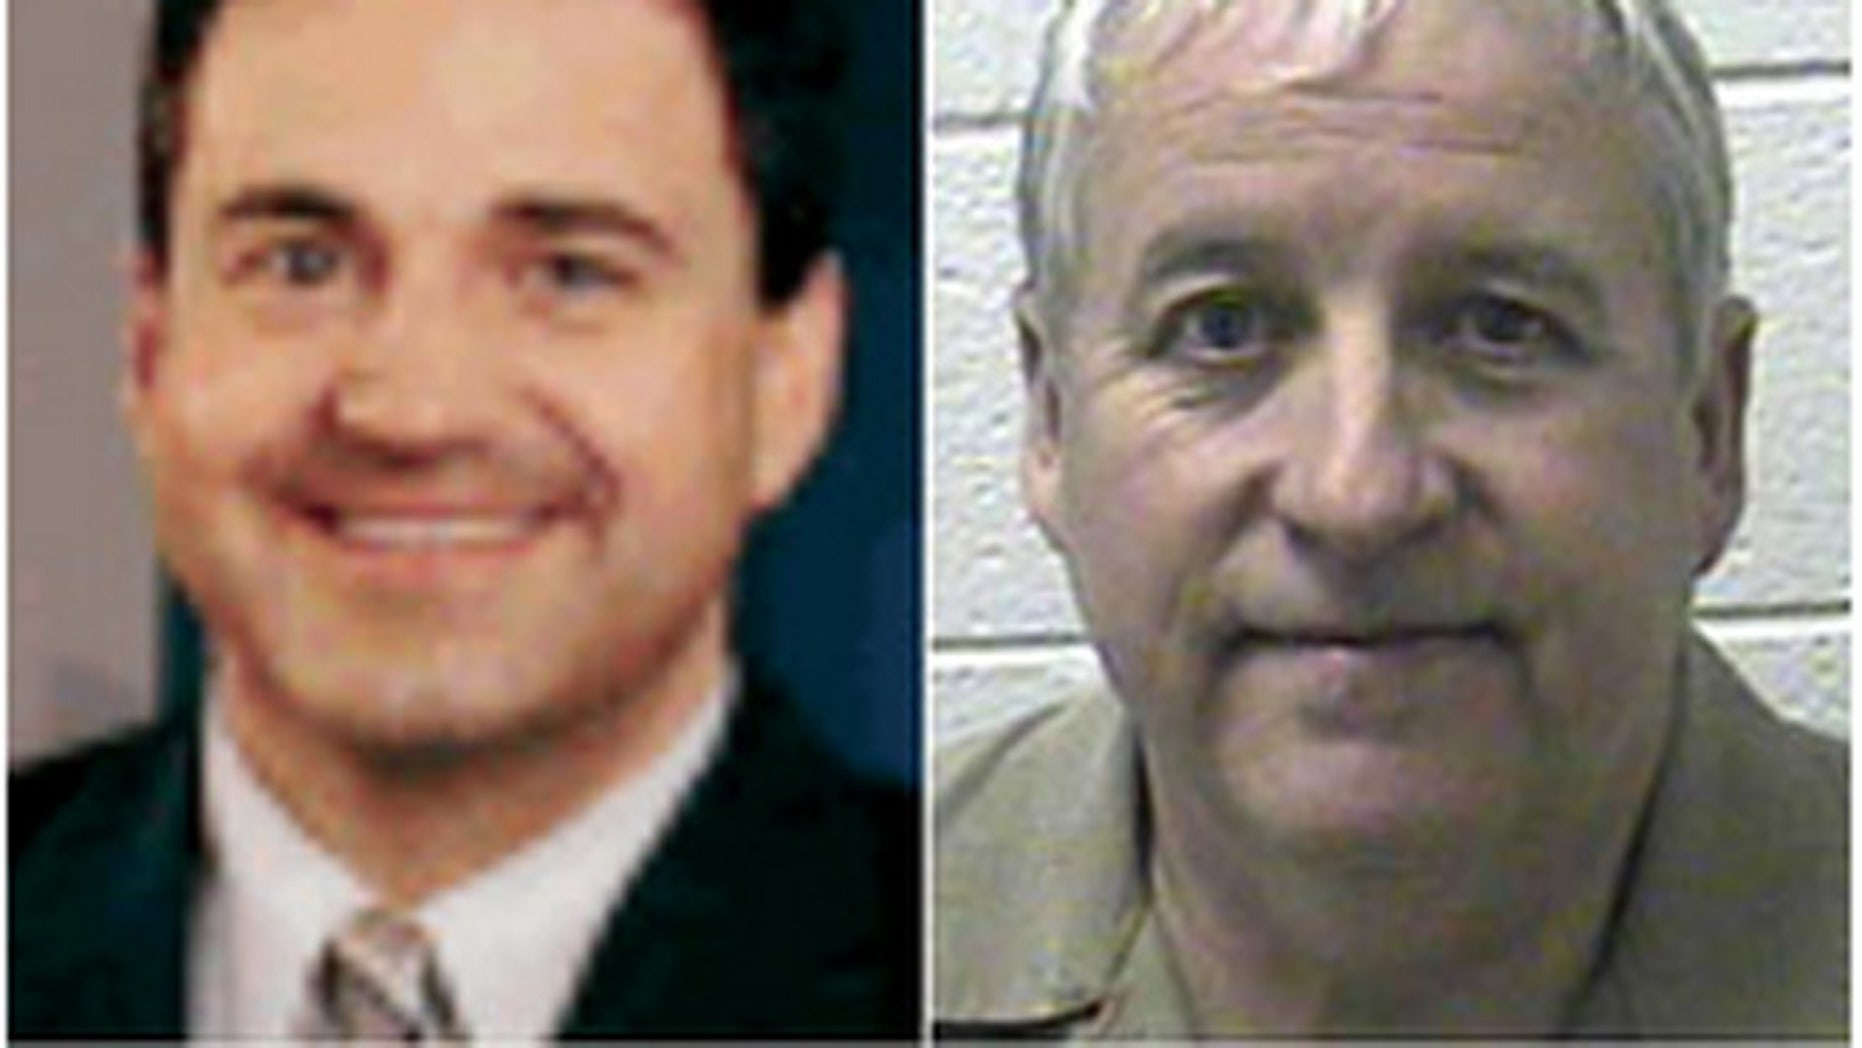 Rob Williams, left, a meteorologist, was allegedly shot with a crossbow by Gerald D. Taylor.